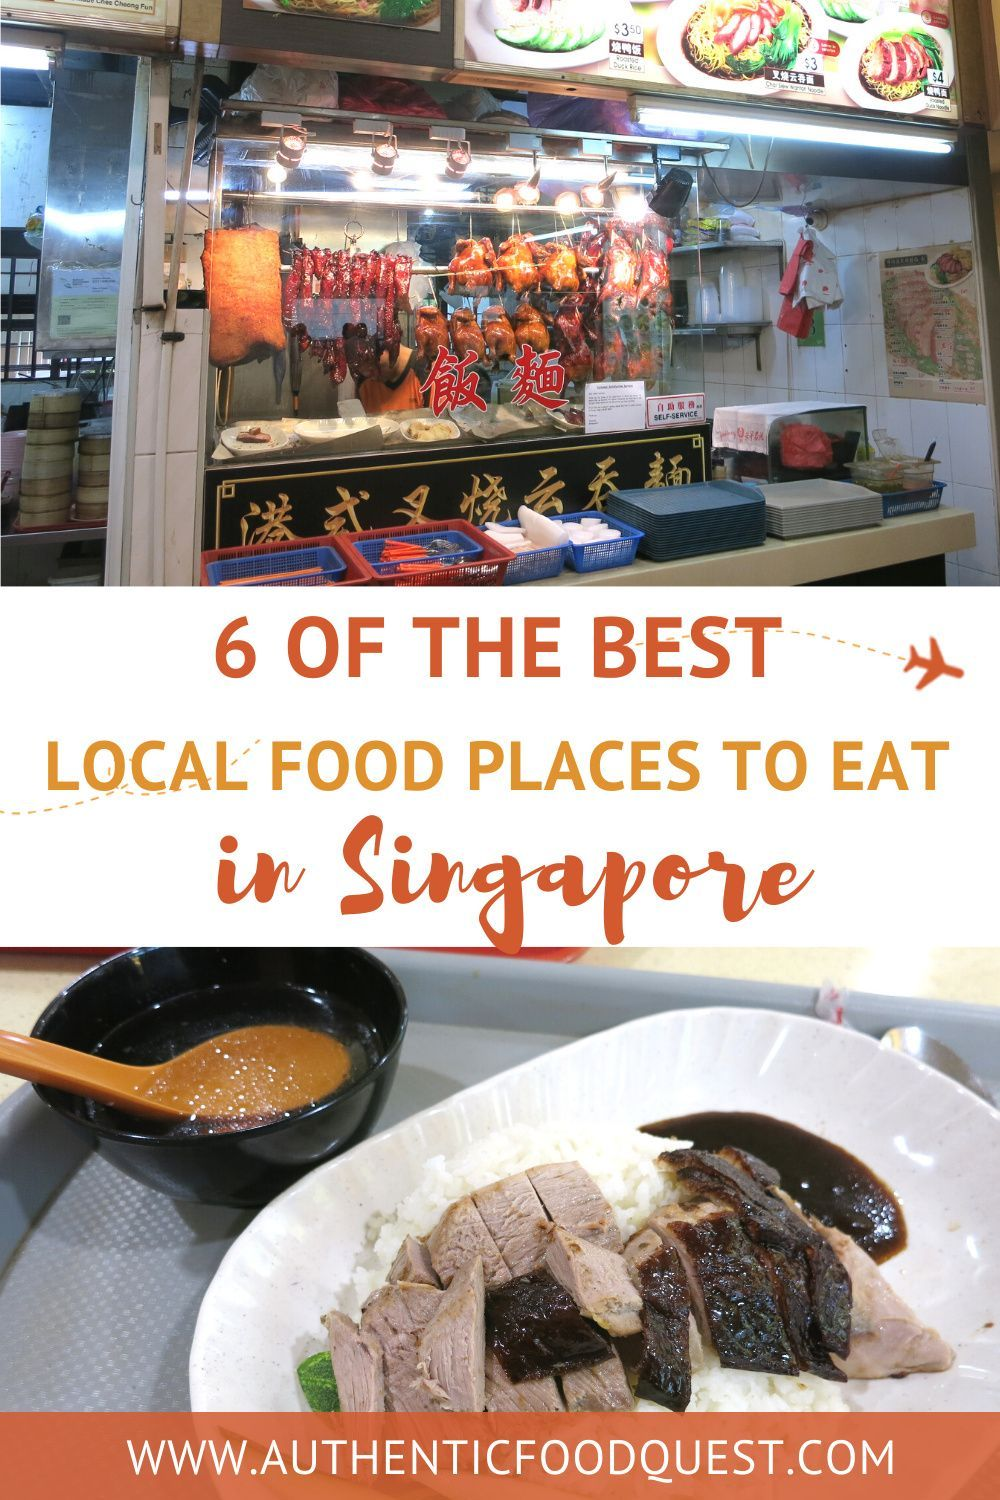 The Best 6 Hawker Centers To Eat Singapore Authentic Recipes Global Recipes Food